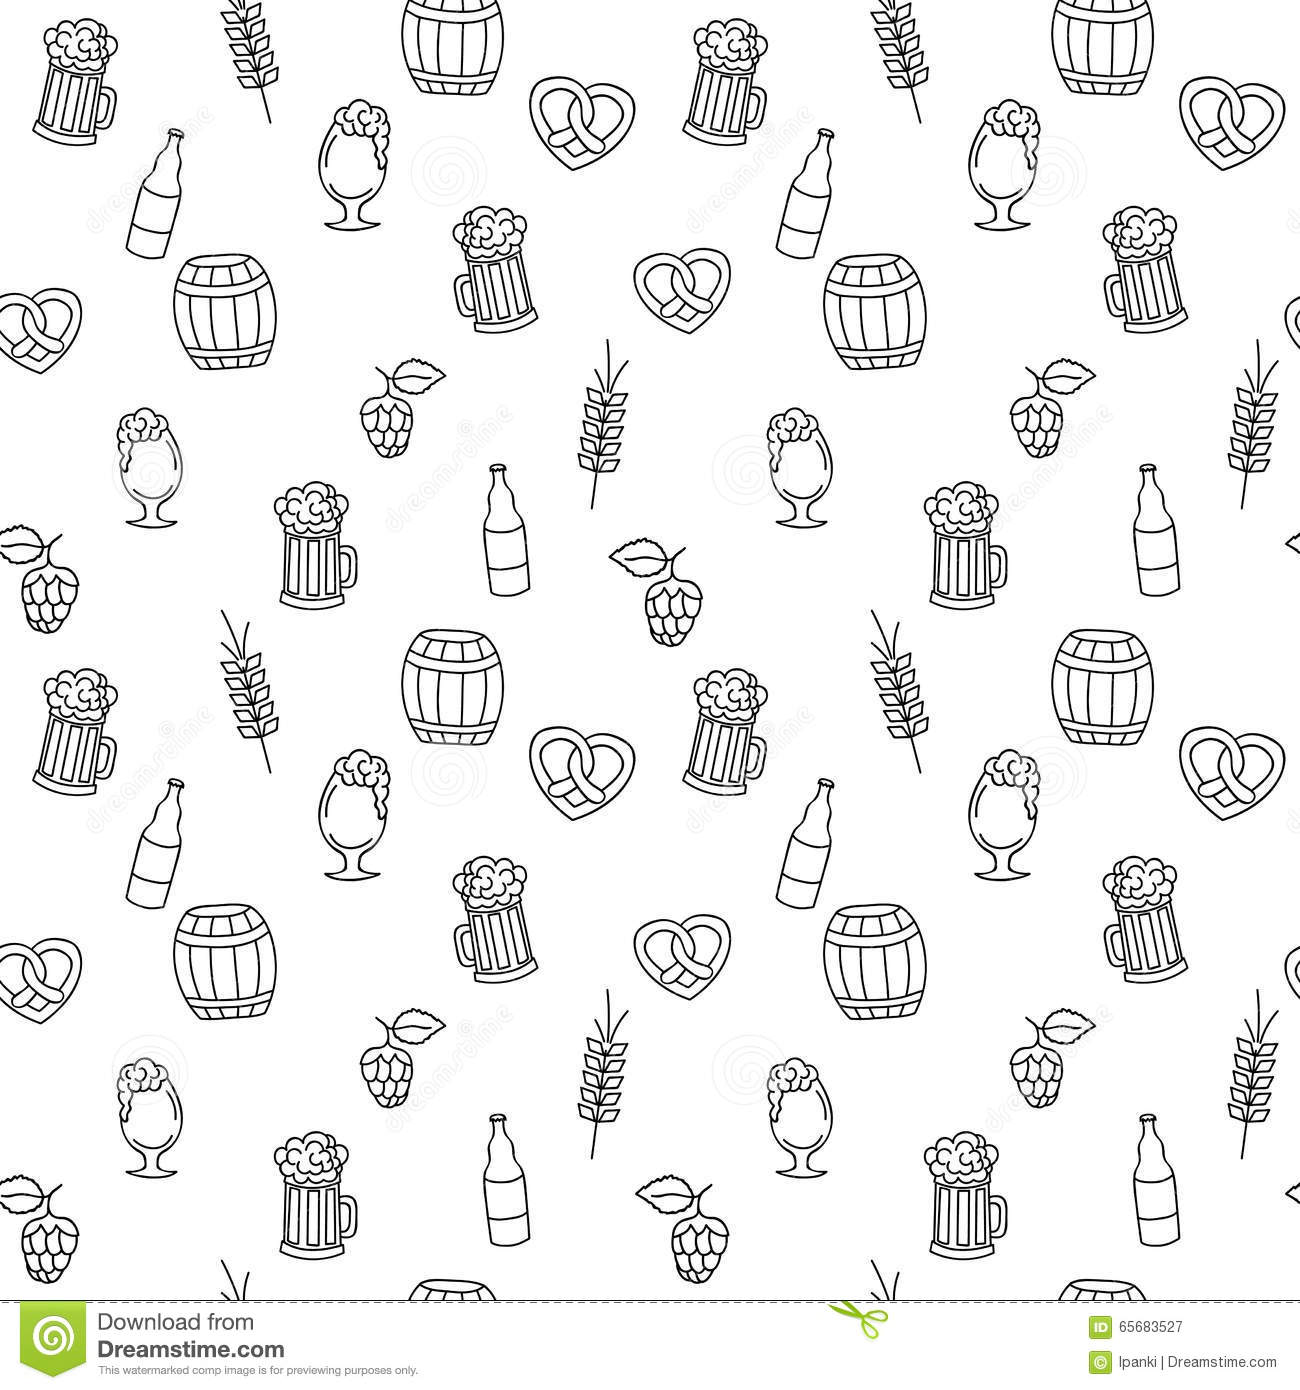 Hand Drawn Beer Mug Seamless Pattern For Adult Coloring Pages